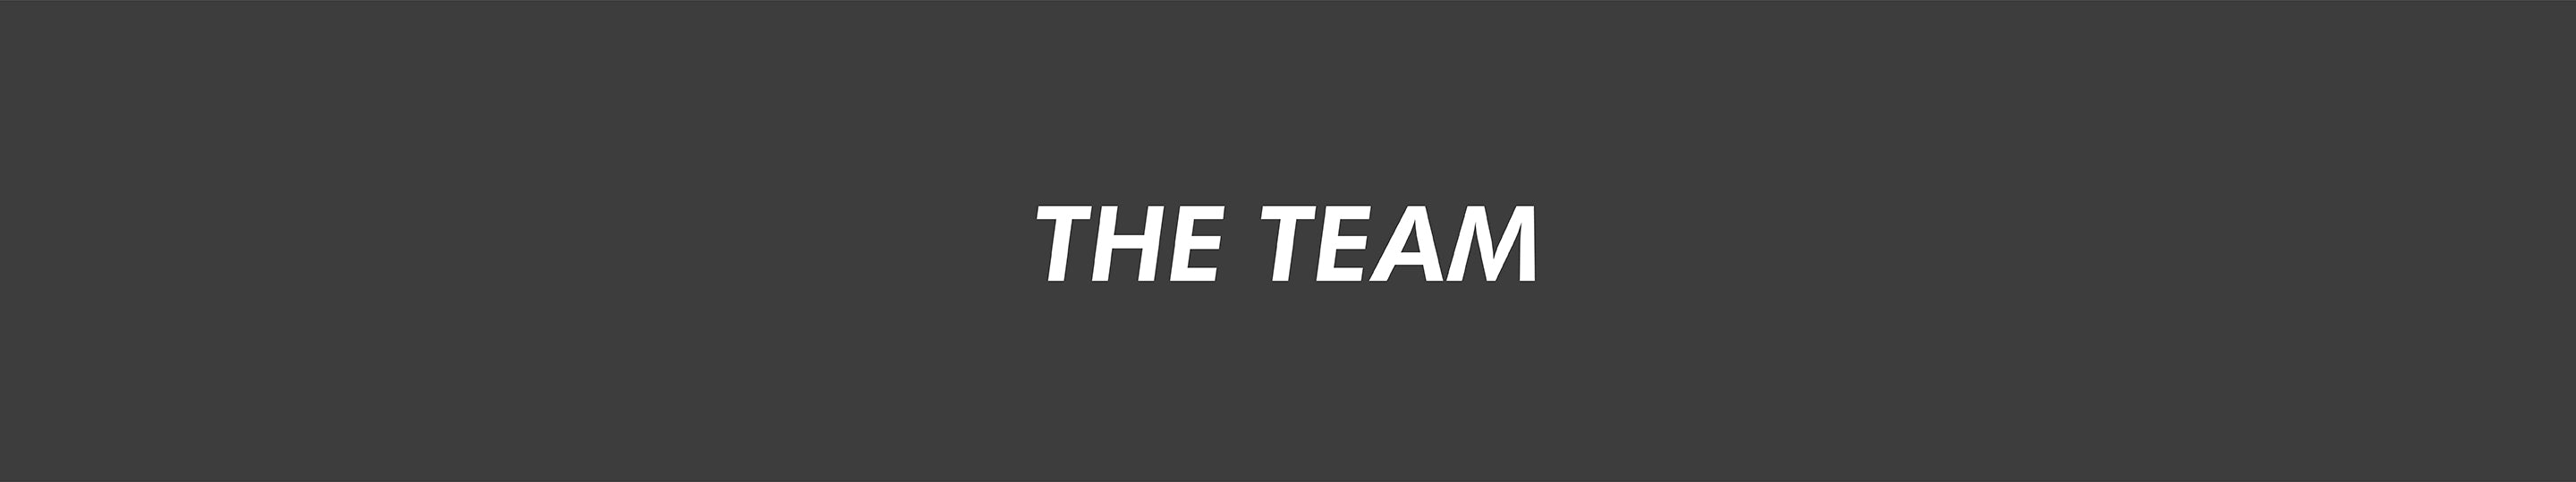 THE TEAM - Banner